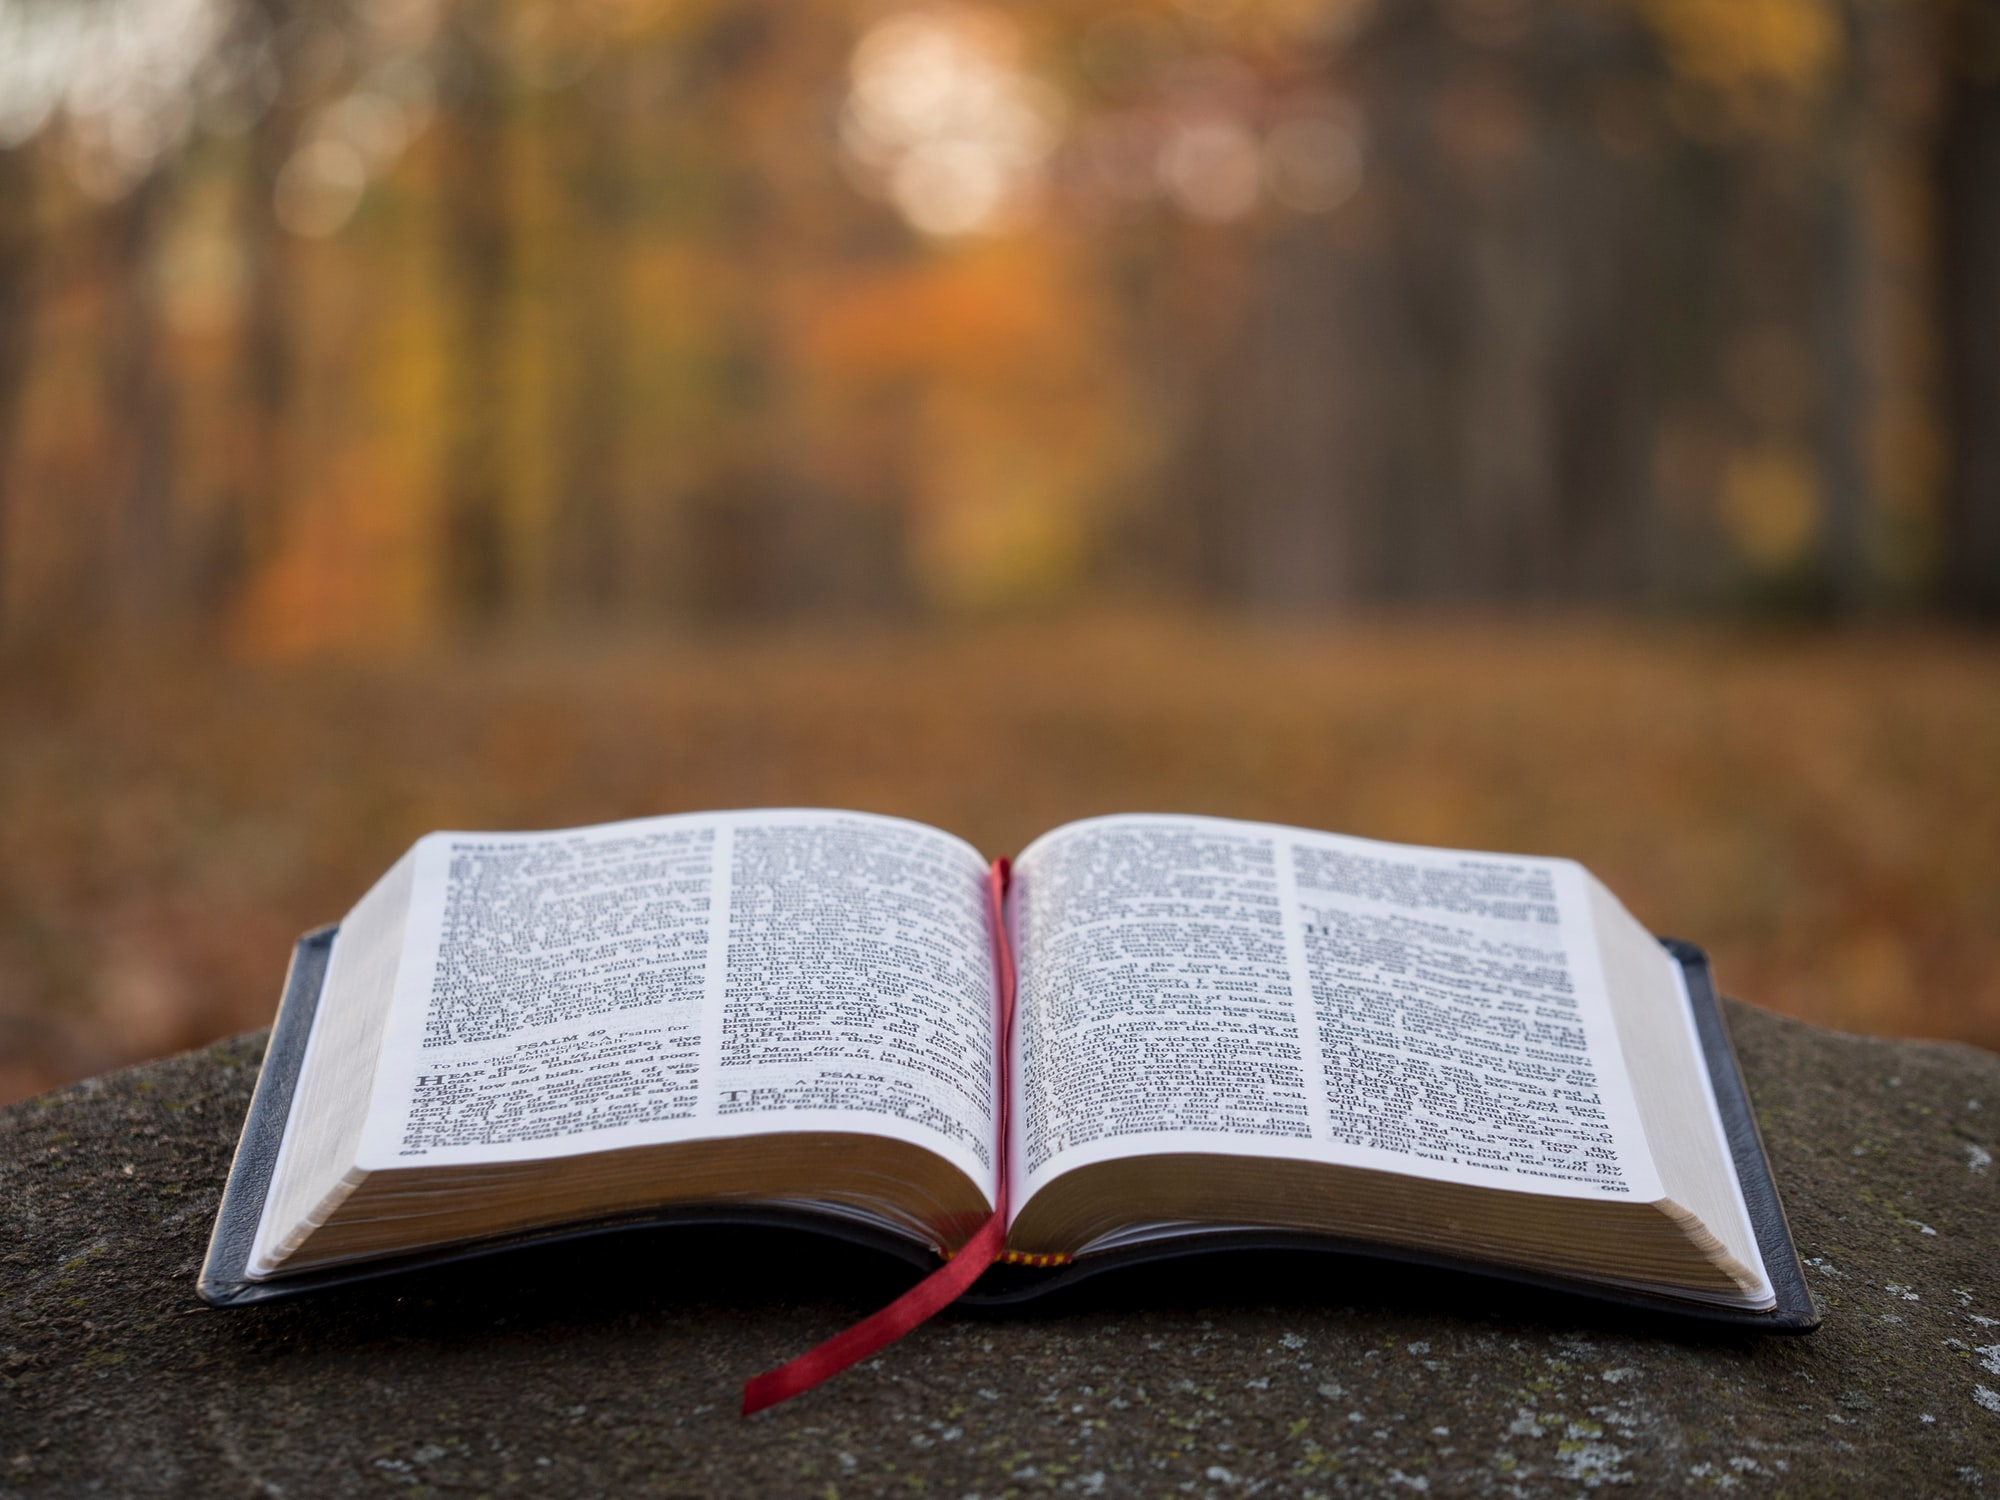 Image of a book splayed open on a rock. The background is a blurry image of an autumn forest